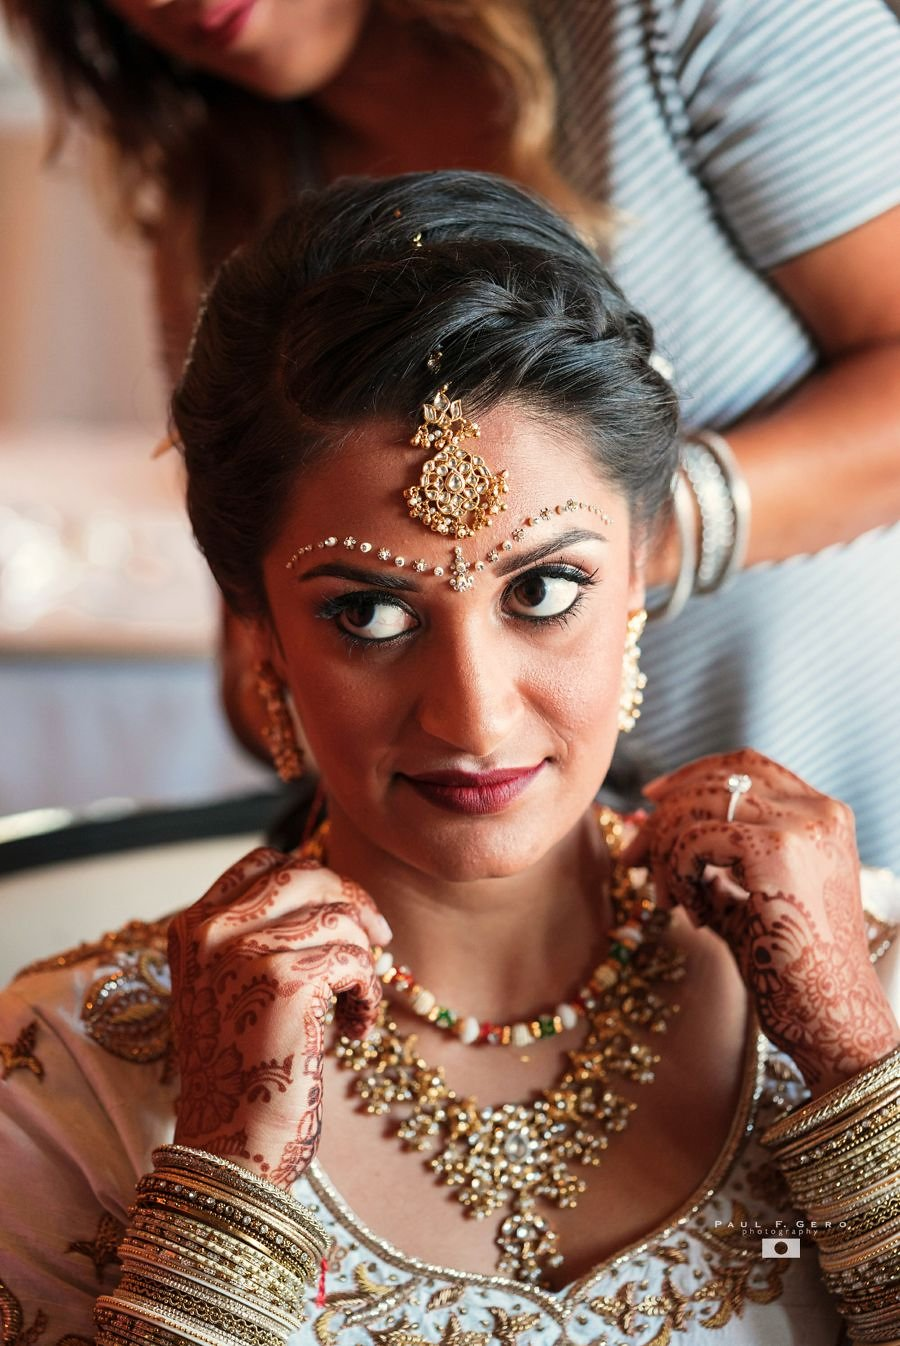 Indian-wedding-Avni-Taylor-Paul-Gero-photography-Hindu-